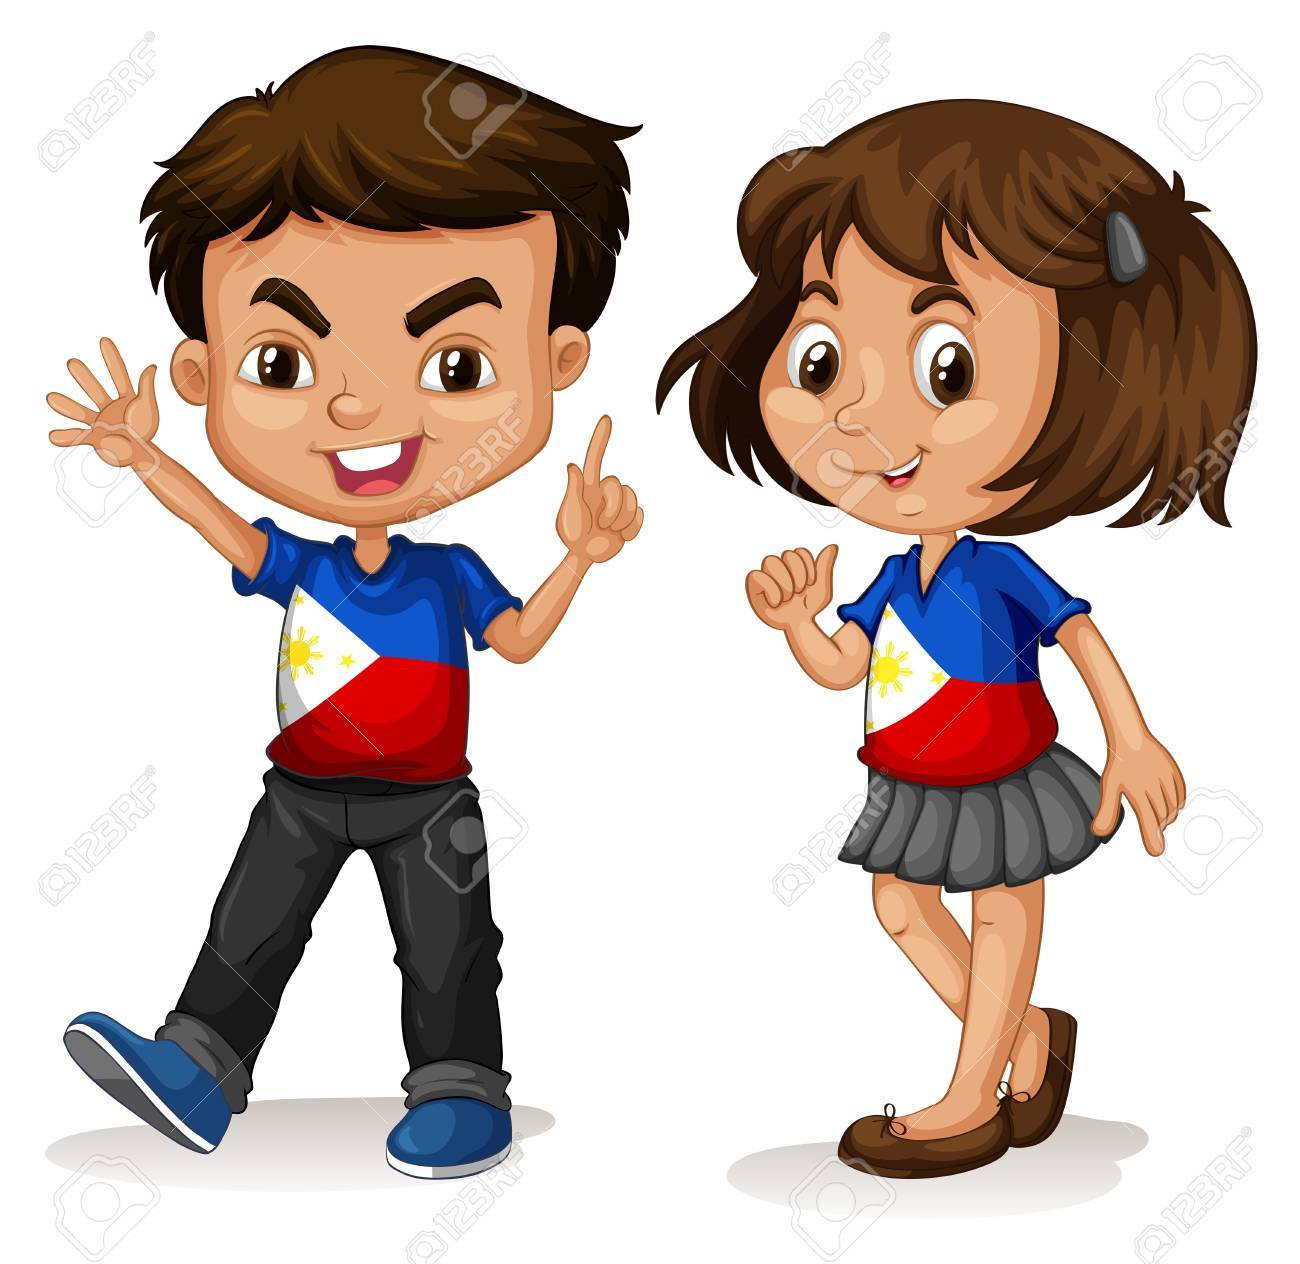 Philippines boy and girl greeting illustration - 44380976